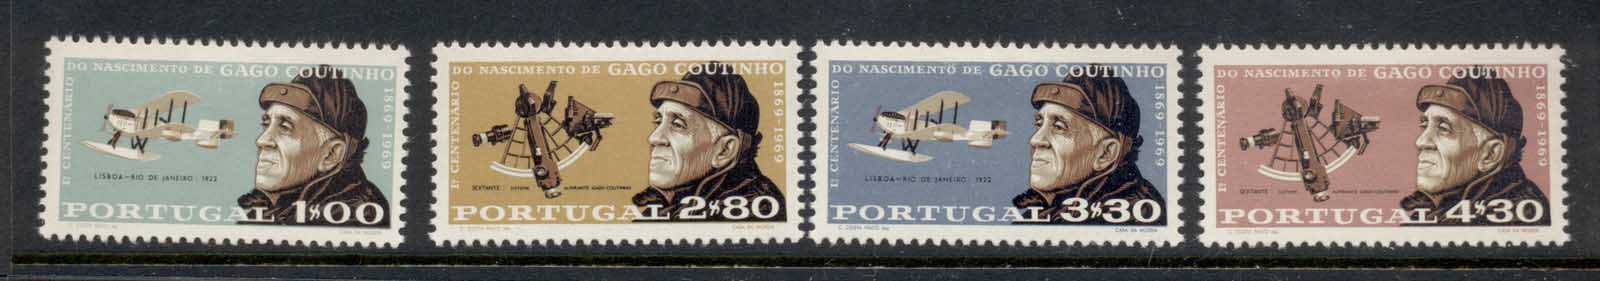 Portugal 1969 Admiral Coutinho MLH